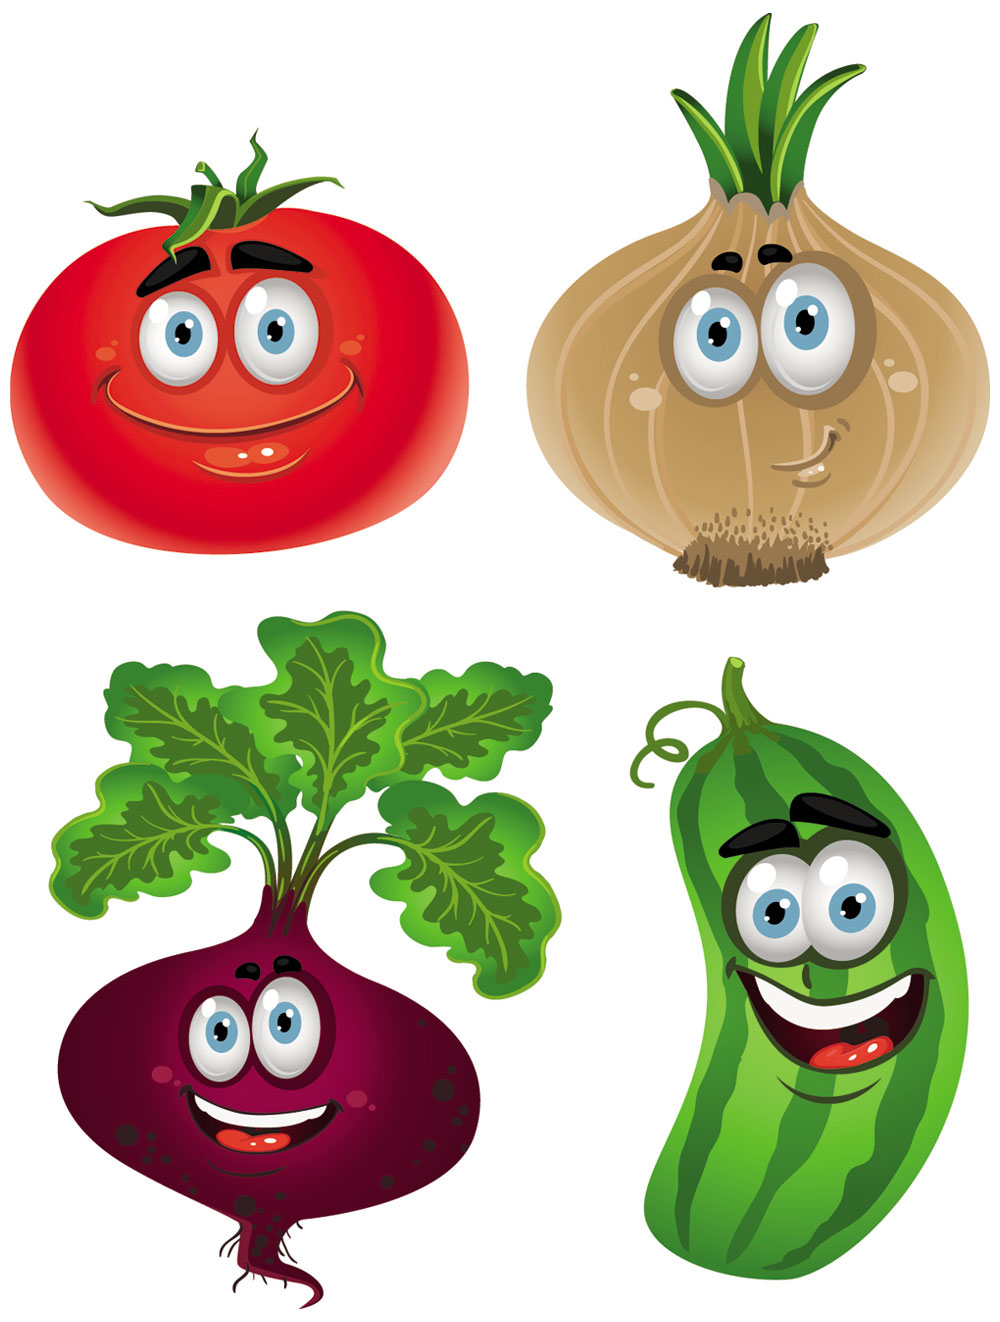 Cartoon vegetables clipart black and white Free Cartoon Vegetables, Download Free Clip Art, Free Clip Art on ... black and white